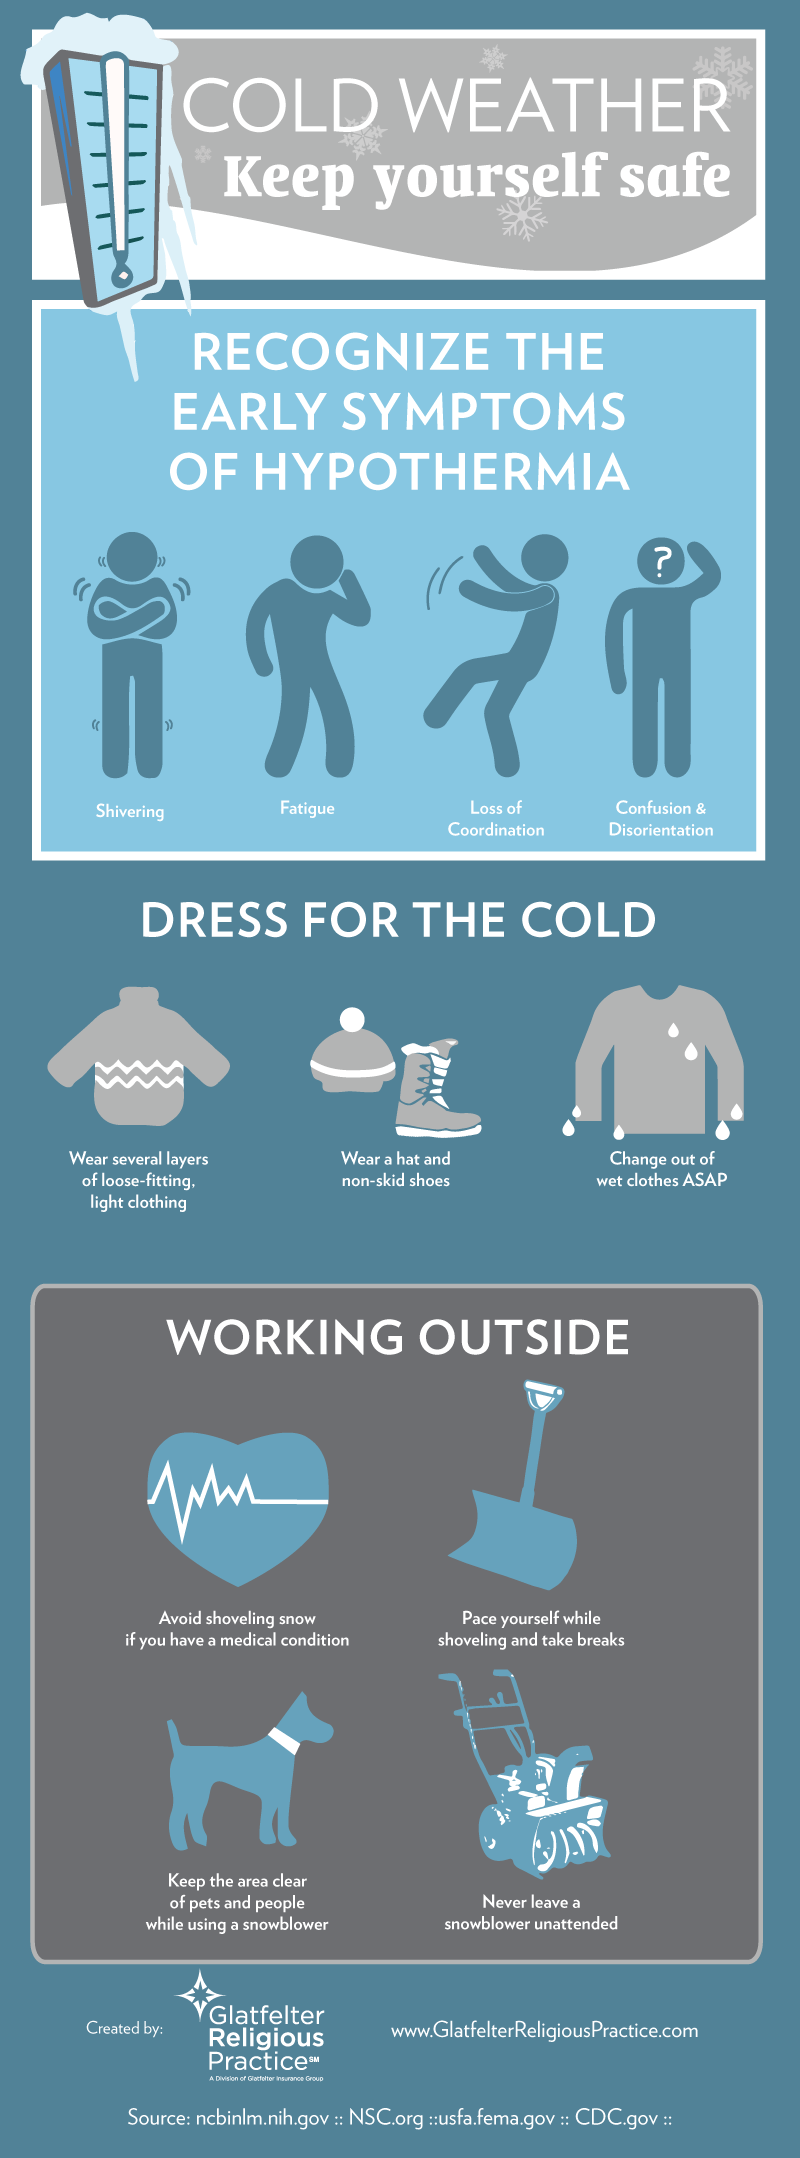 cold weather infographic